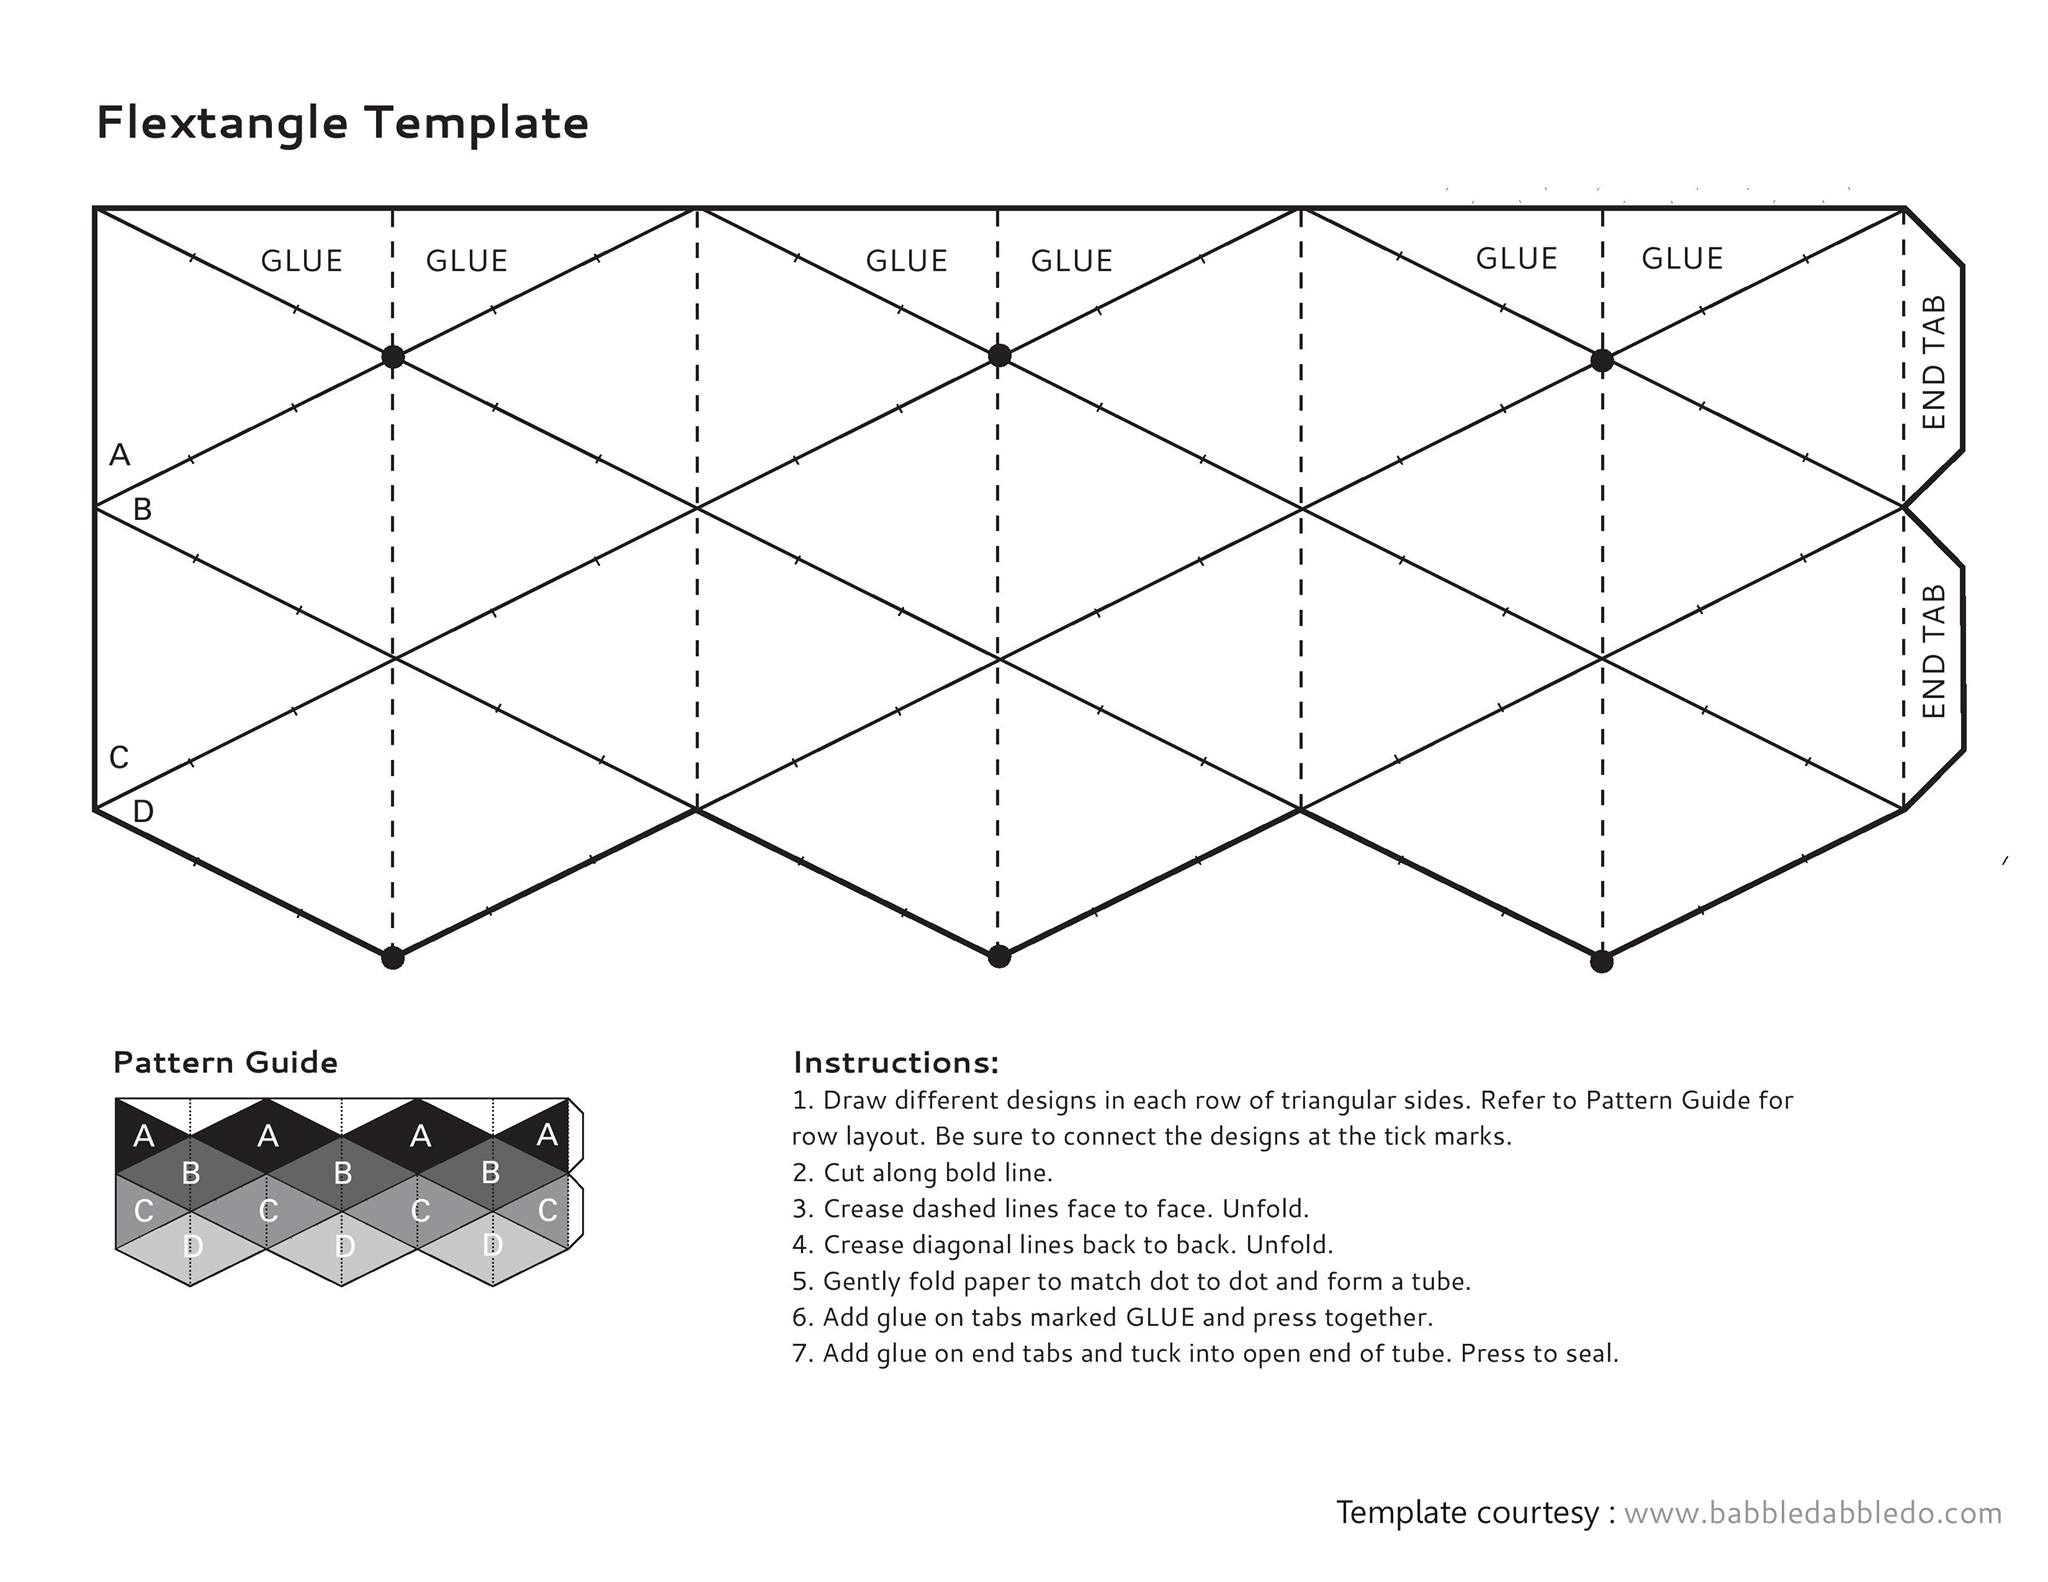 Fillable Online Flextangle Template Fax Email Print PDFfiller